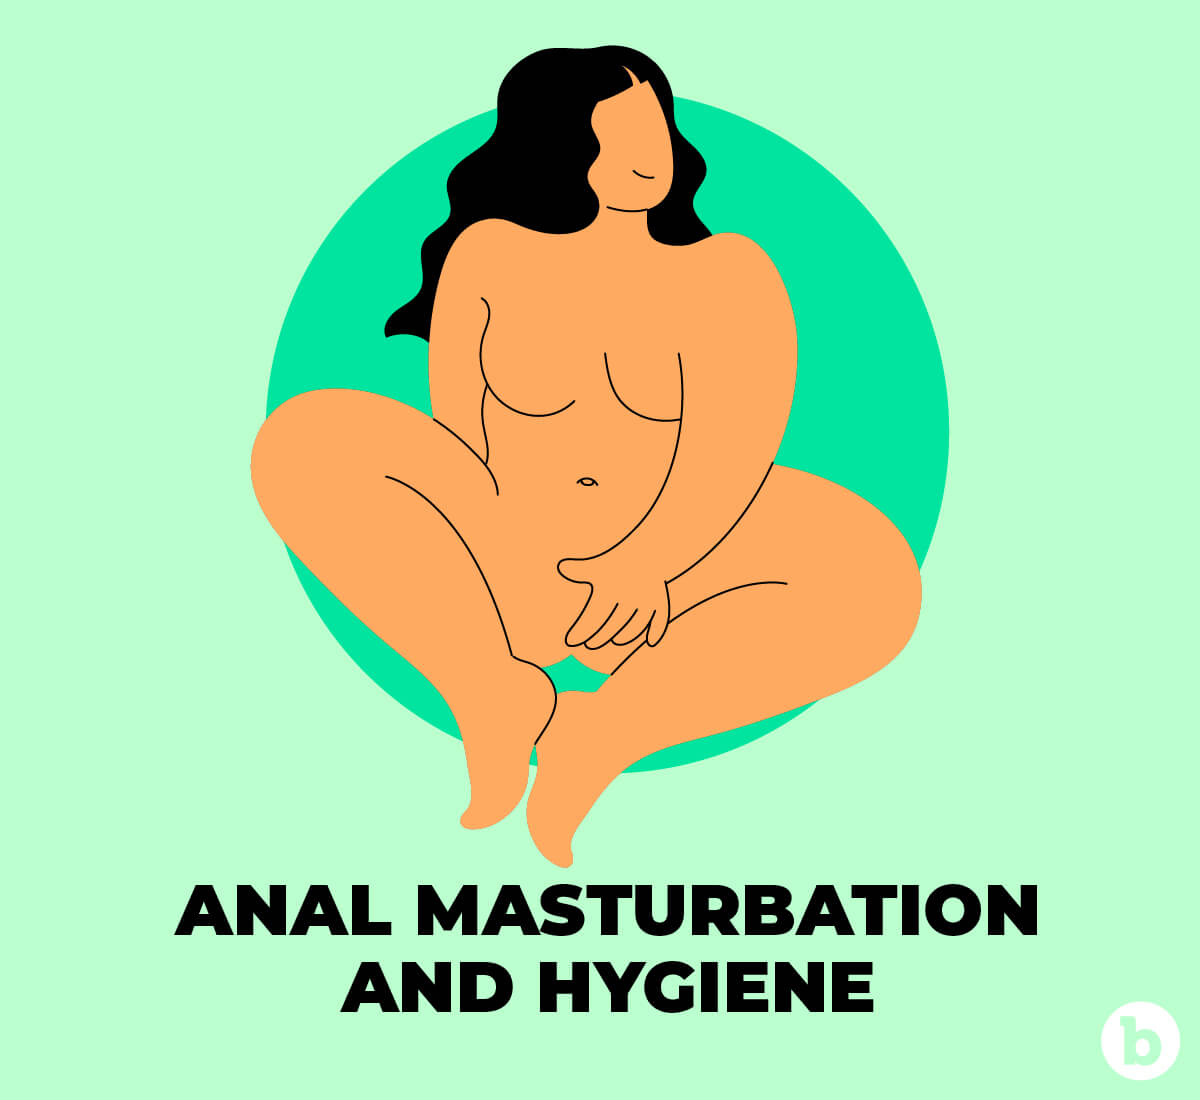 Hygiene is an essential part when it comes to solo anal masturbation